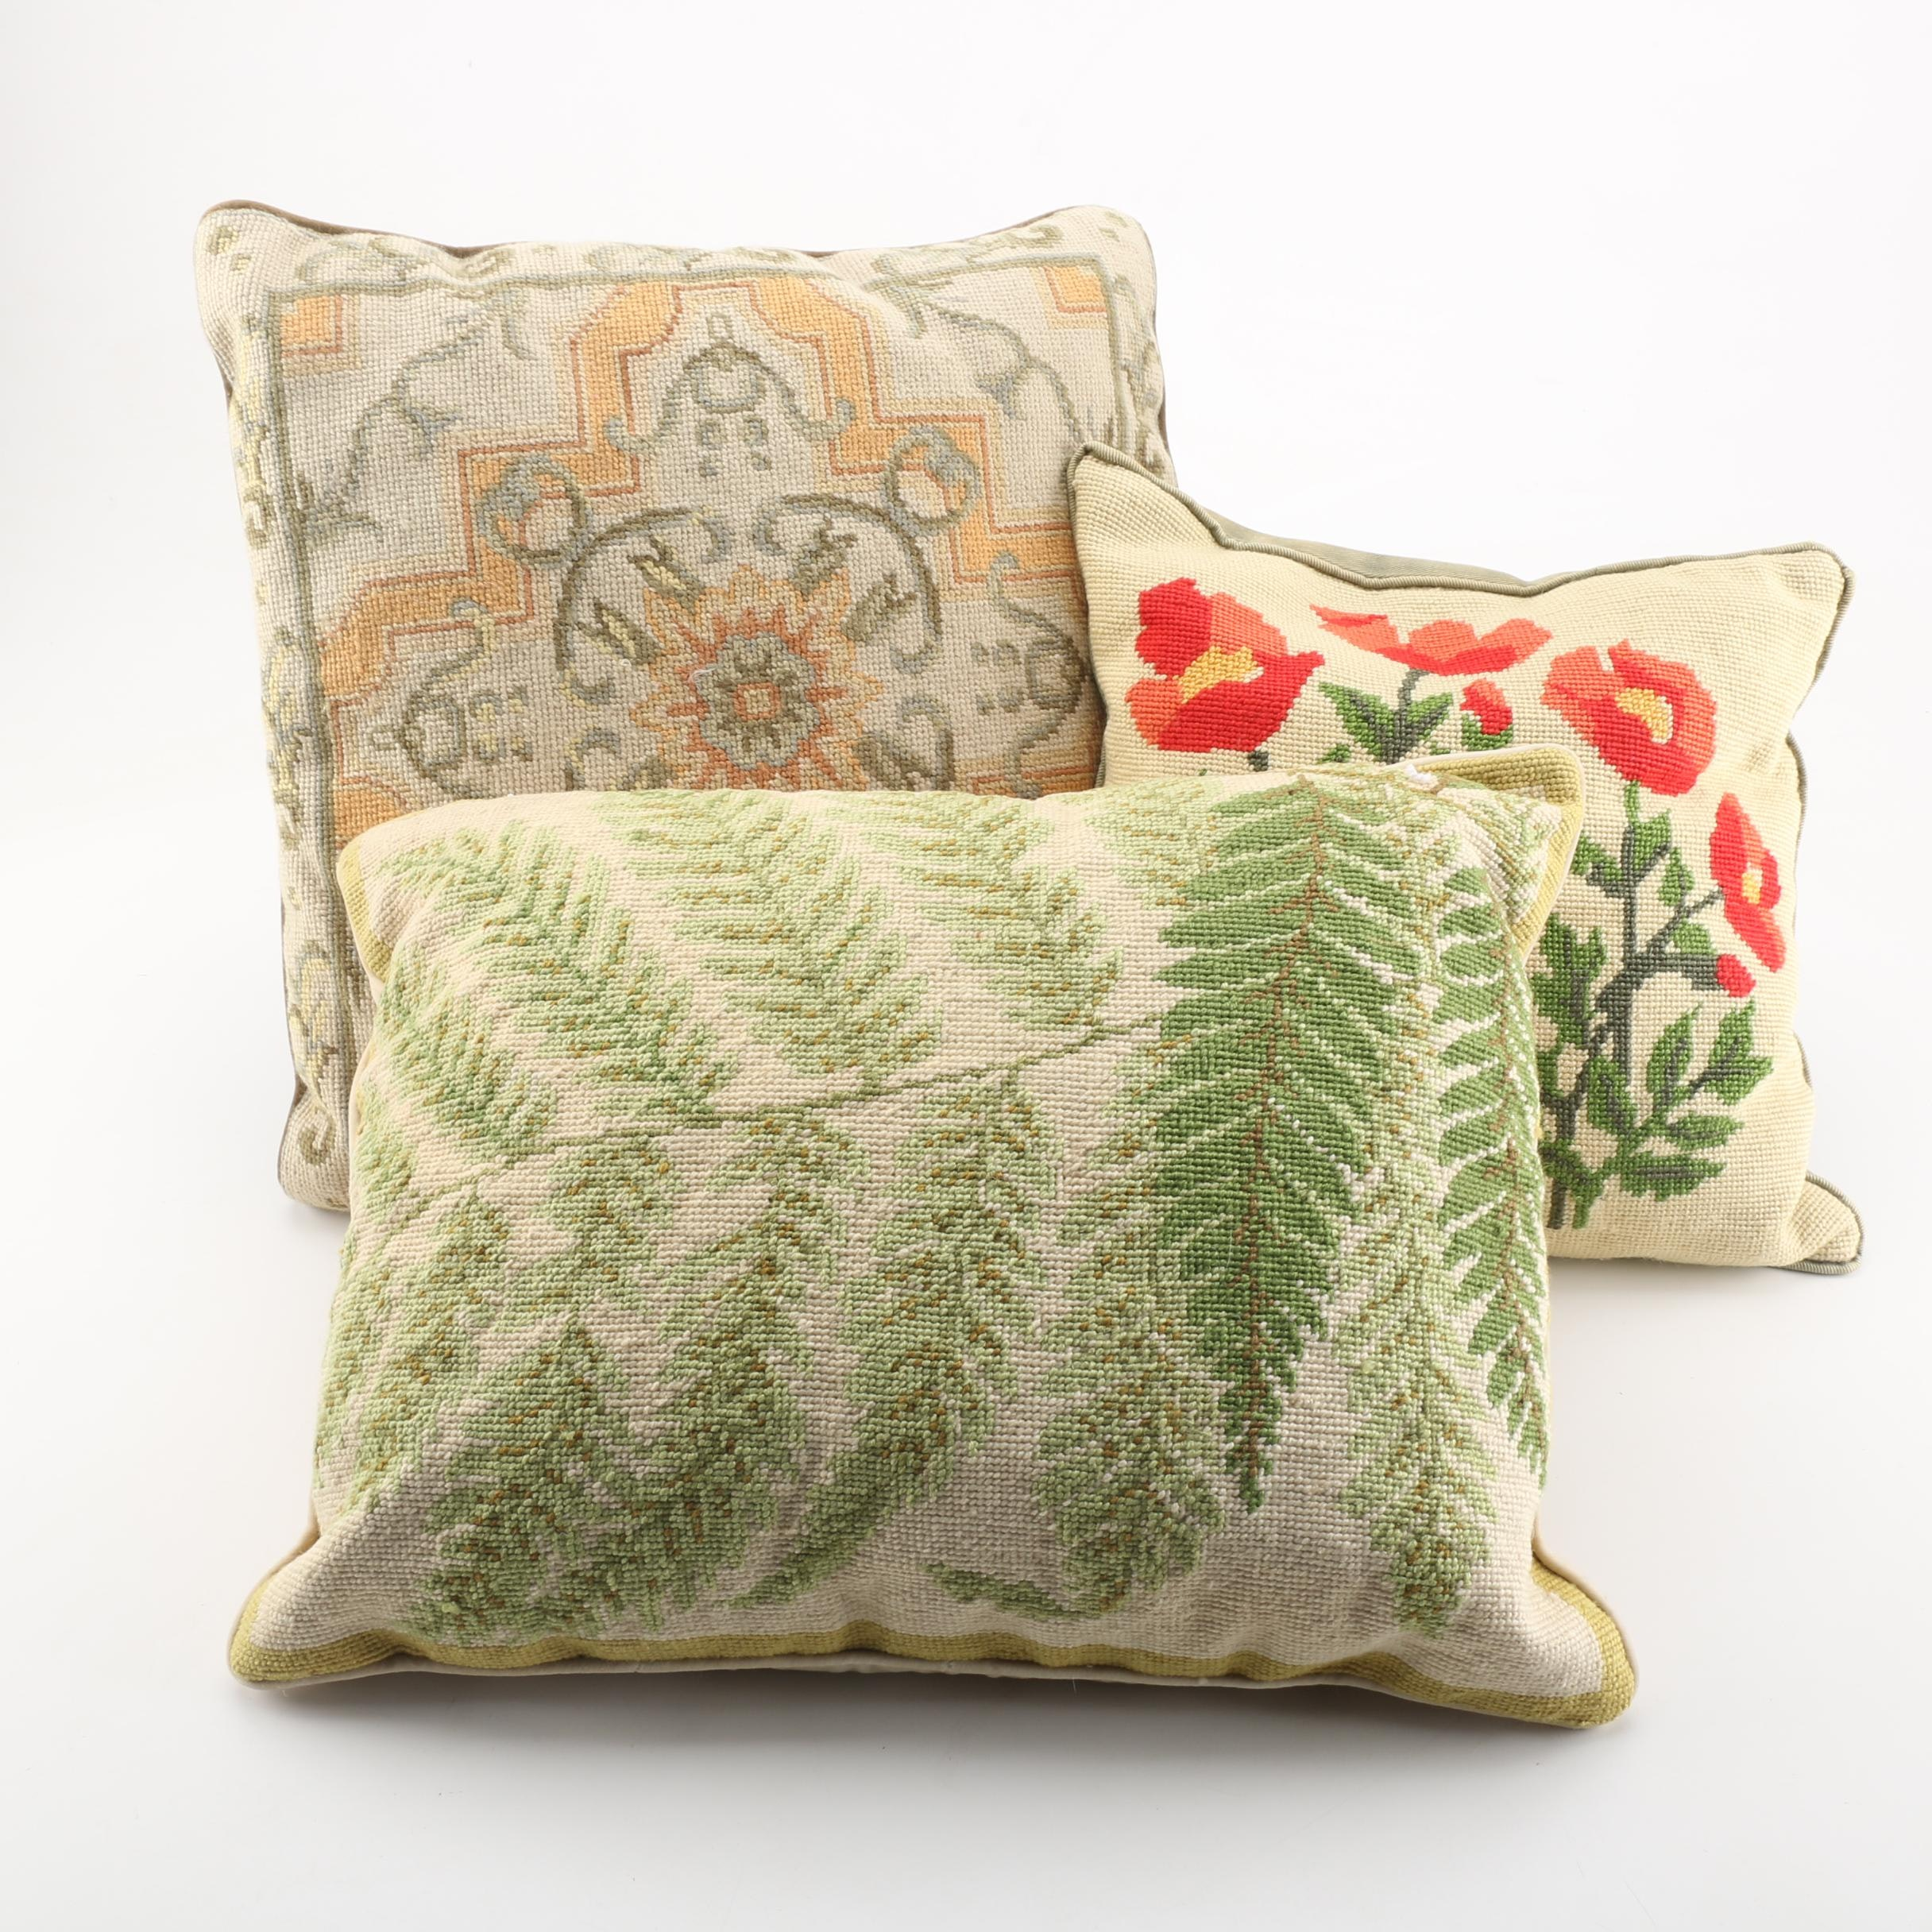 Assortment of Embroidered Throw Pillows